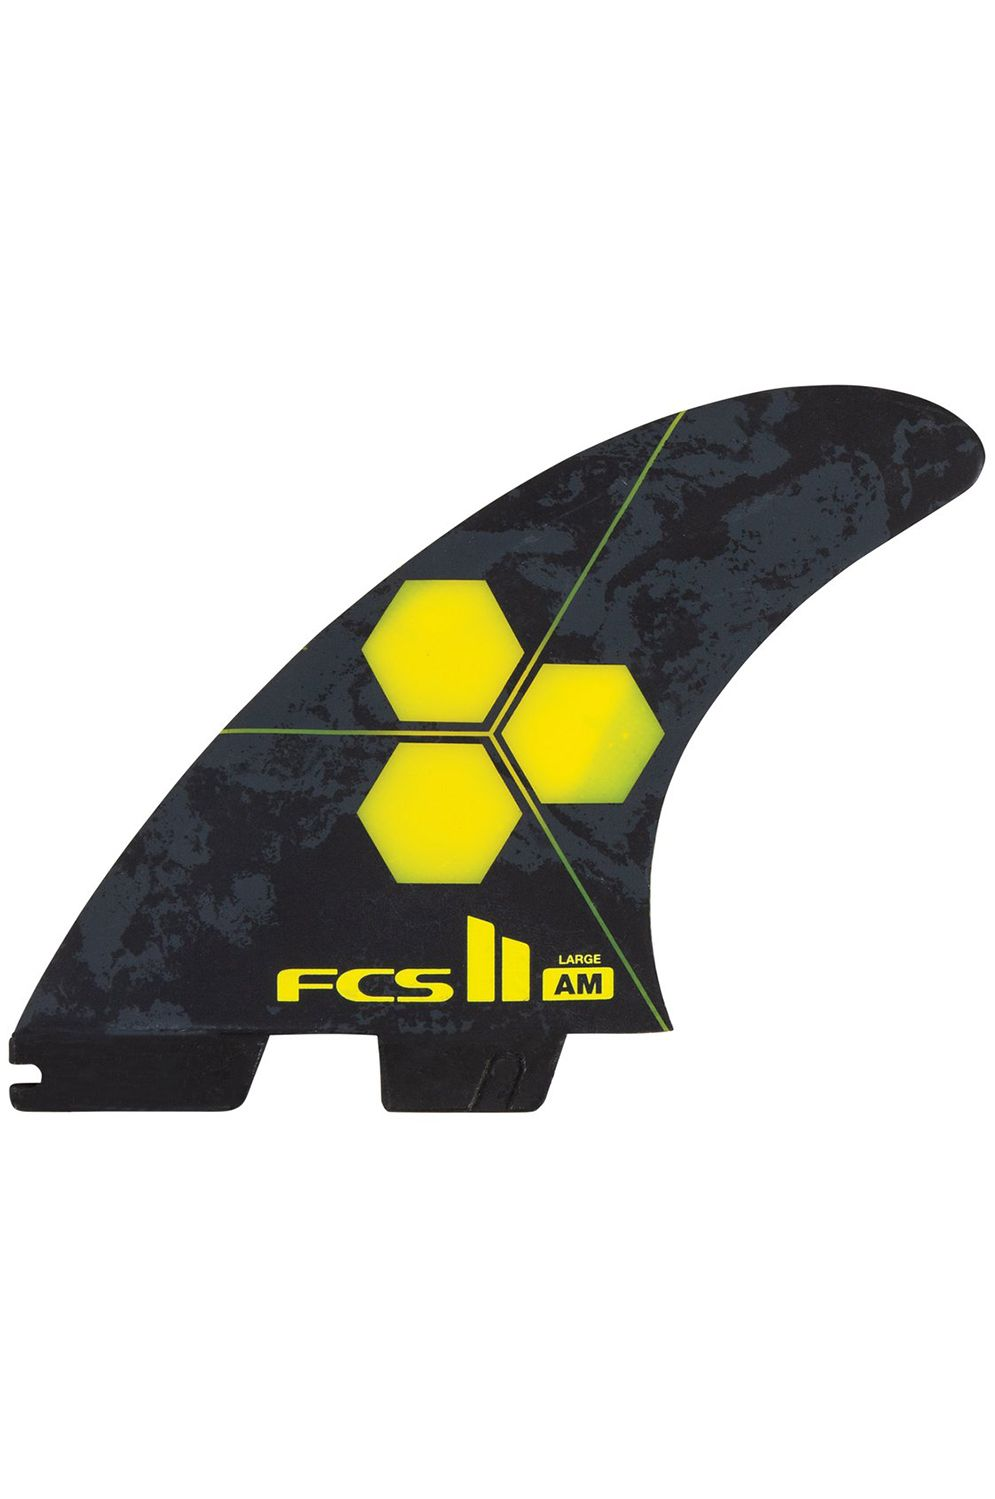 Fcs Fins II AM PC LARGE YELLOW TRI Tri